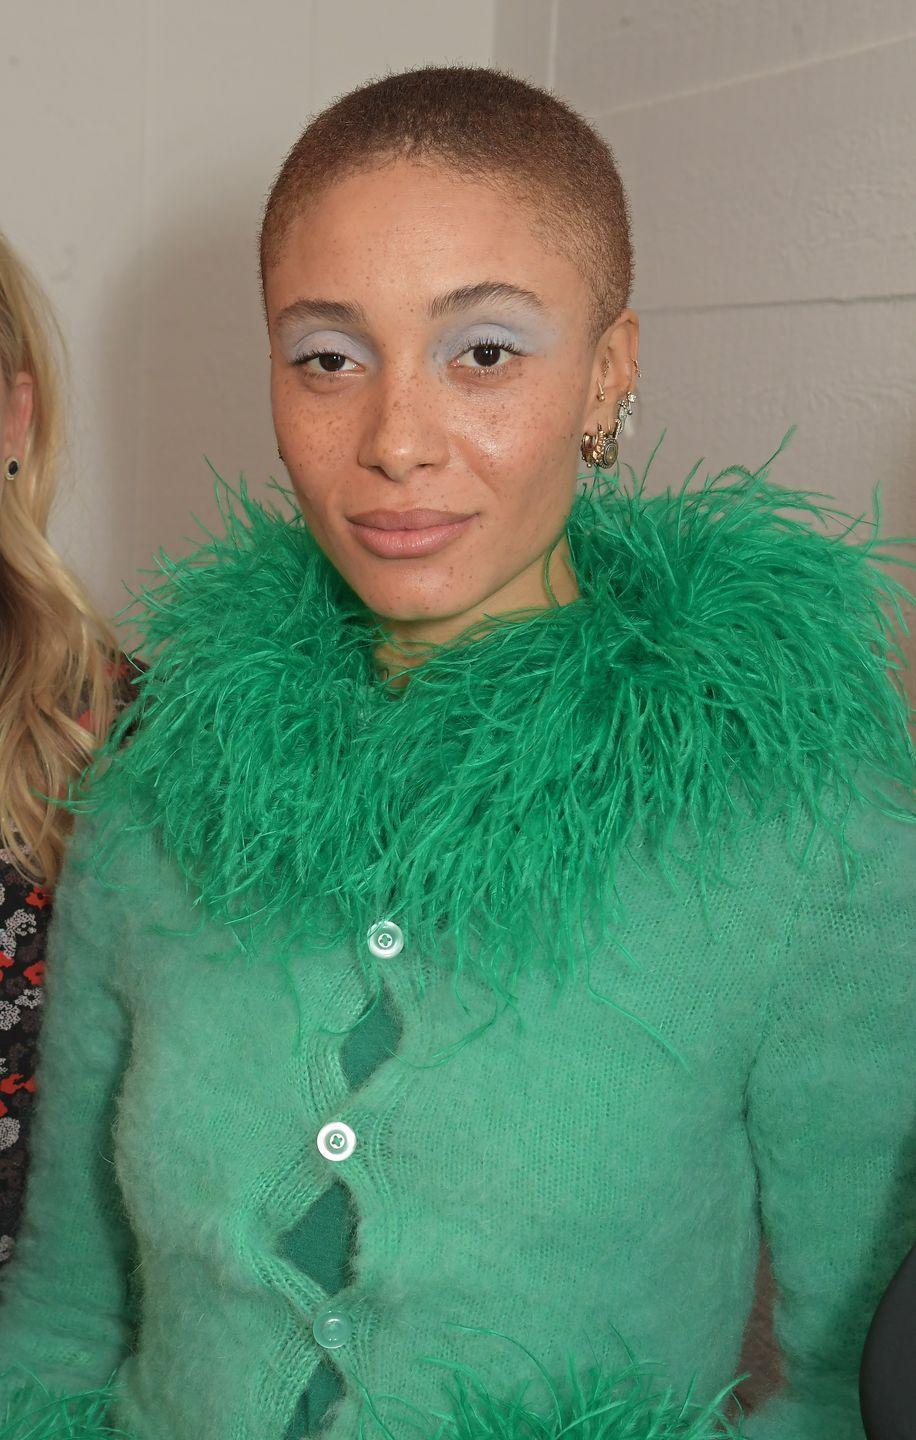 """<p>Adwoa Aboah wrote a powerful essay on her relationship with her hair for <a href=""""https://www.teenvogue.com/story/adwoa-aboah-model-shaved-head"""" rel=""""nofollow noopener"""" target=""""_blank"""" data-ylk=""""slk:Teen Vogue"""" class=""""link rapid-noclick-resp"""">Teen Vogue</a>. """"I was empowered, and for the first time, I don't need to carry around a large plastic bag of products, and it doesn't take me an hour to find all the hairpins after a night out,"""" she said.</p>"""